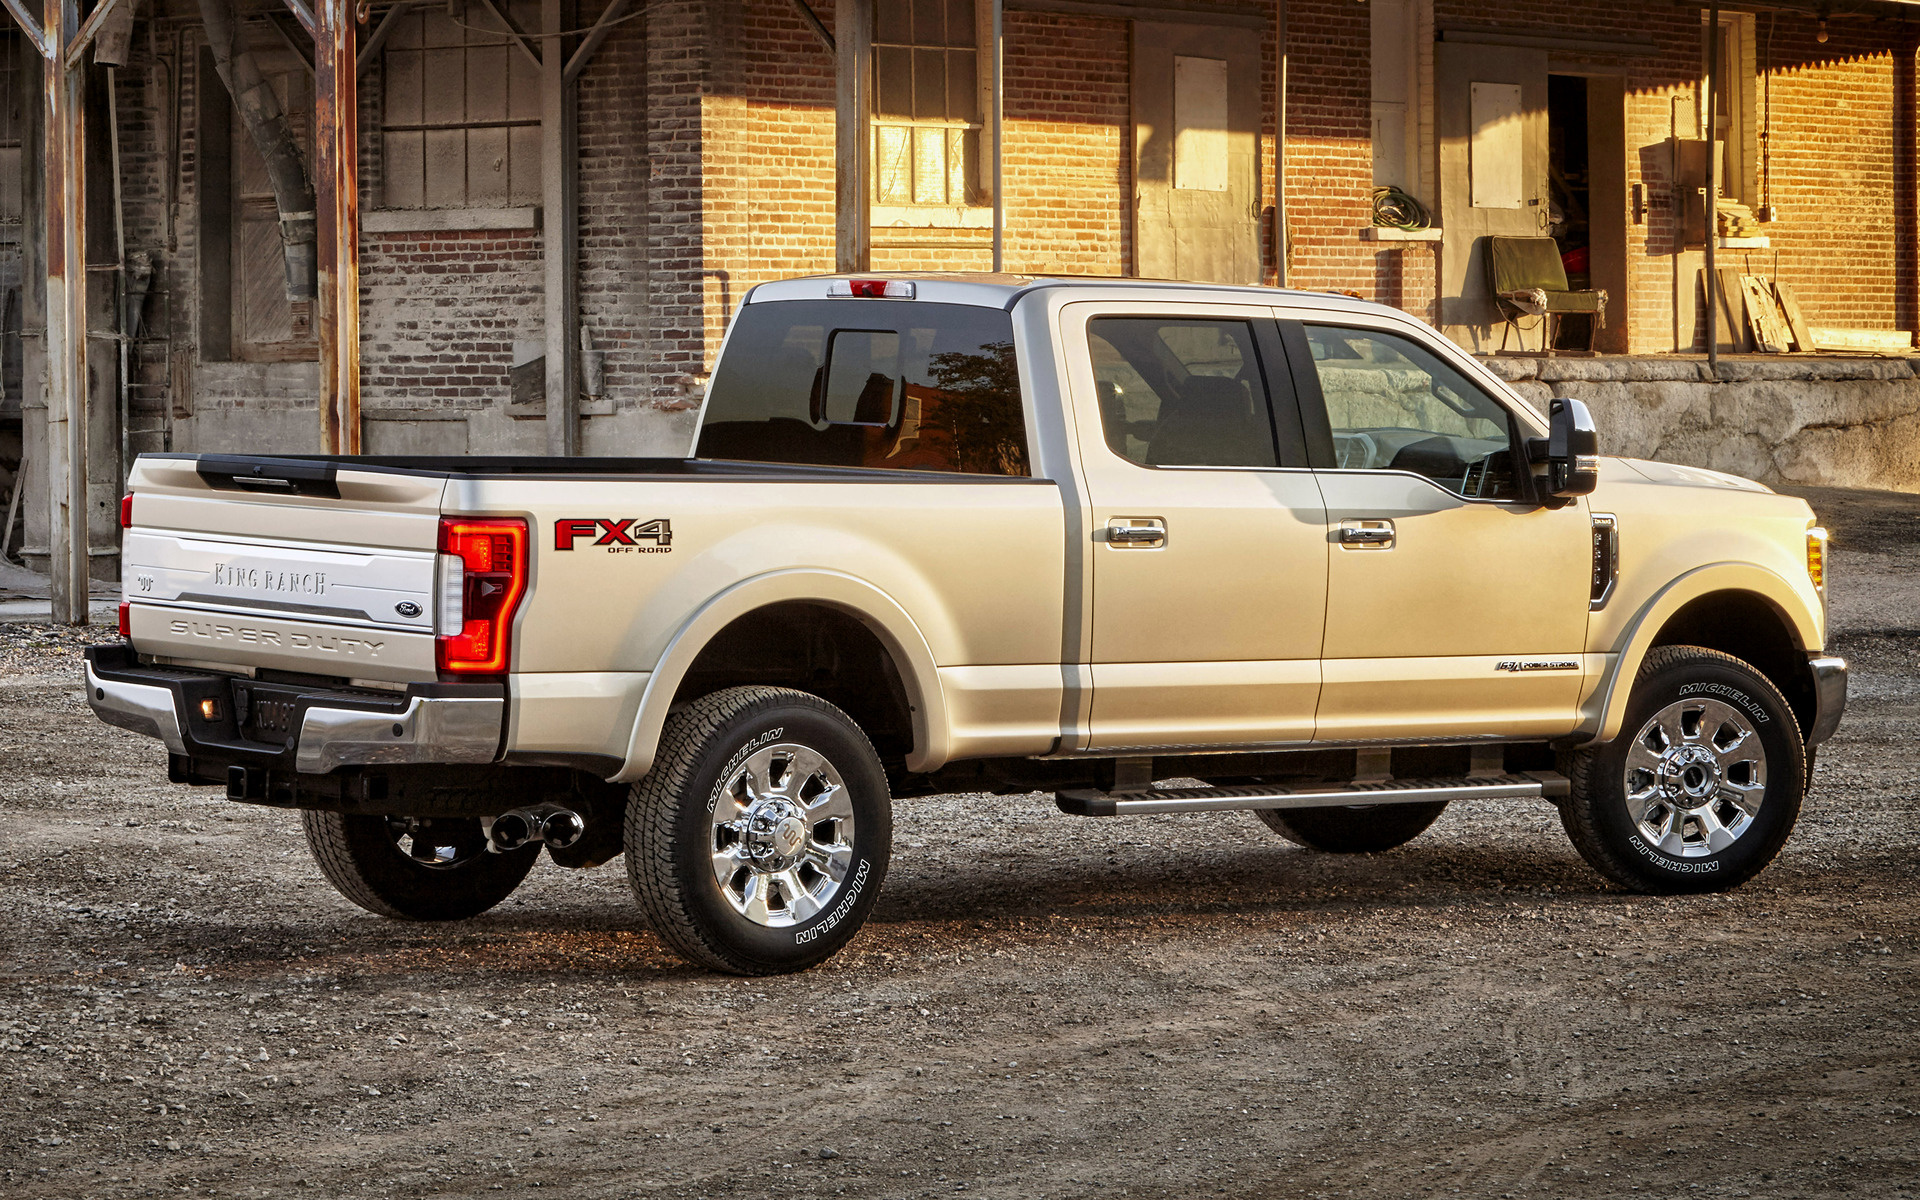 2016 F350 Super Duty >> Ford F-350 King Ranch FX4 Crew Cab (2017) Wallpapers and HD Images - Car Pixel